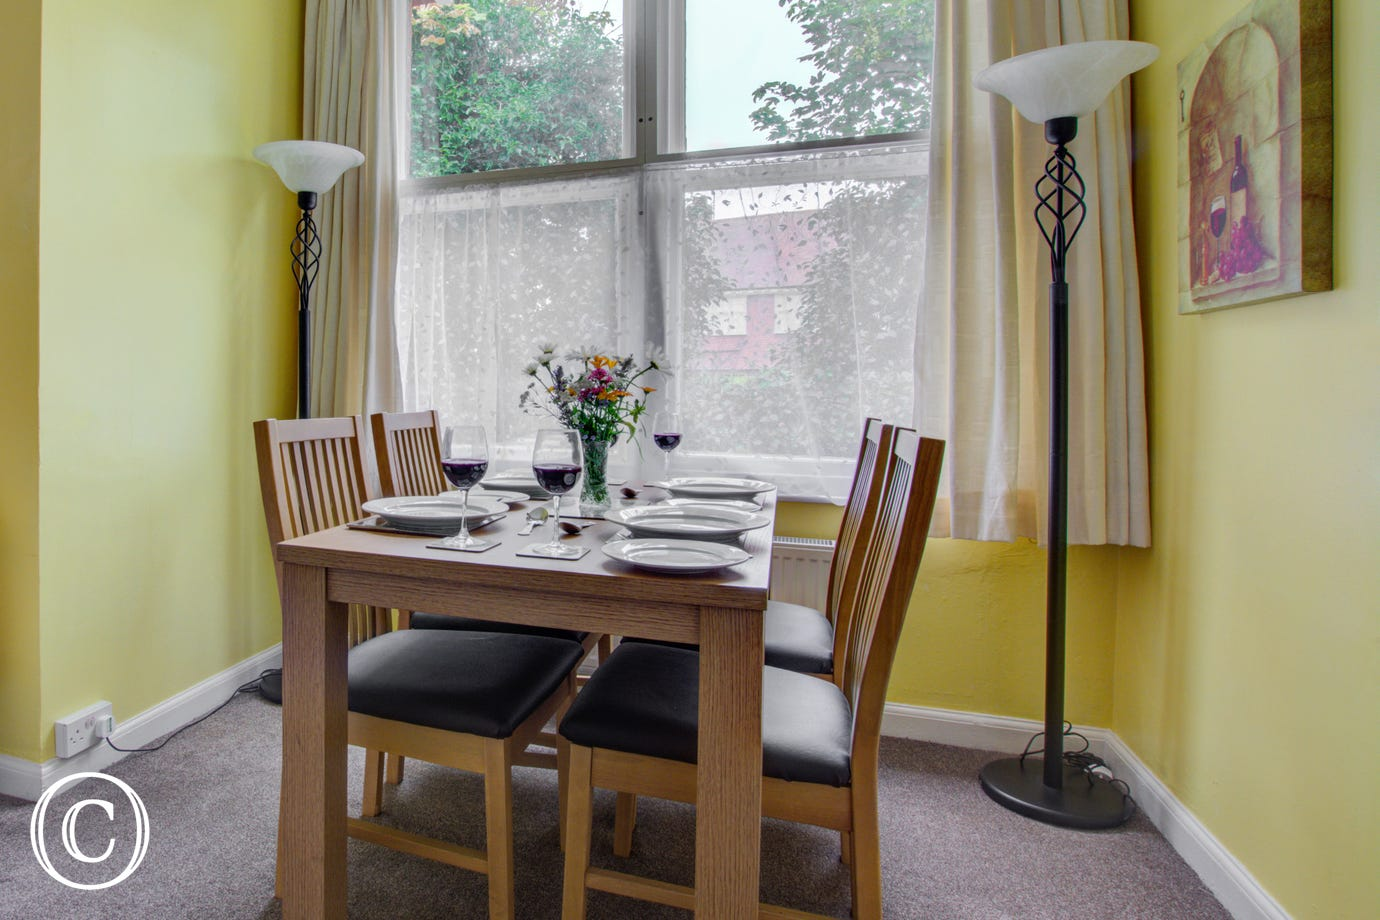 Dining area with table & chairs